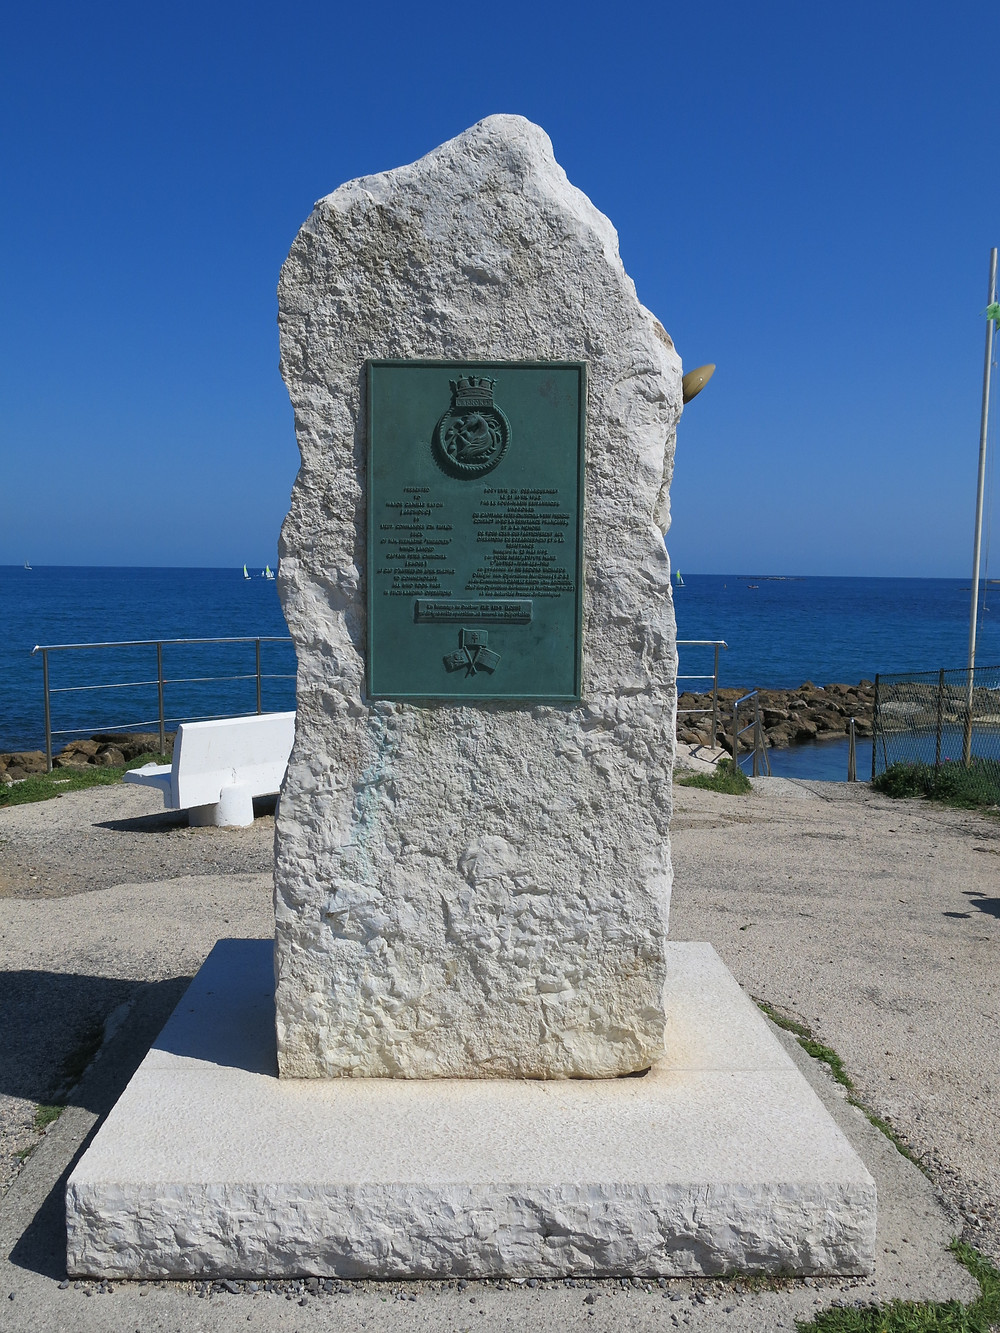 Monument at Antibes, France, recognizing Peter Churchill and HMS Unbroken for the April 21, 1942 landing and delivery of agents.